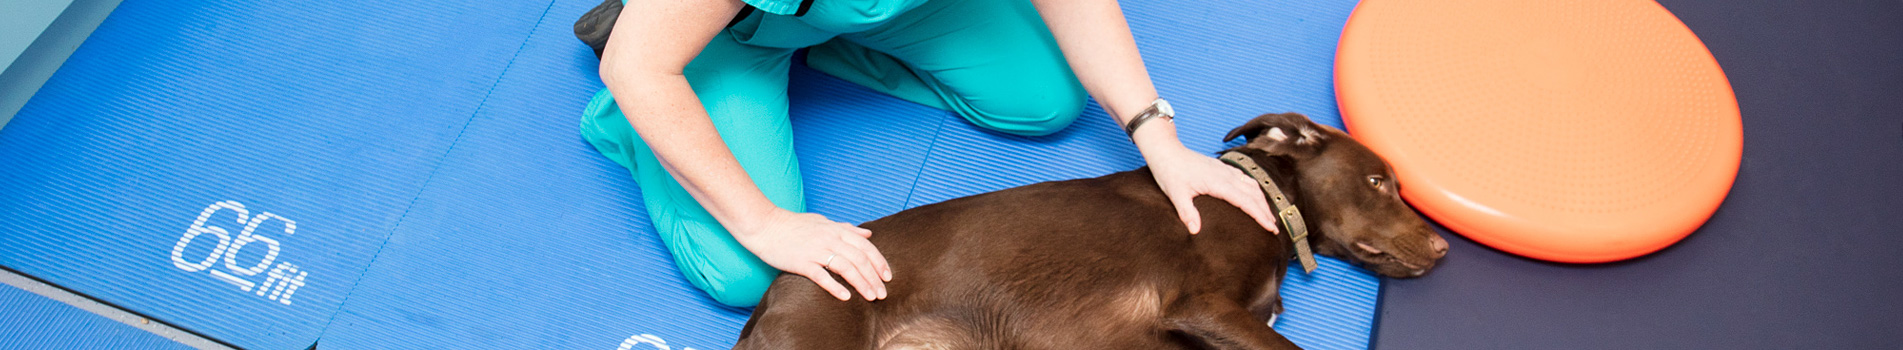 Physiotherapy Veterinary Services